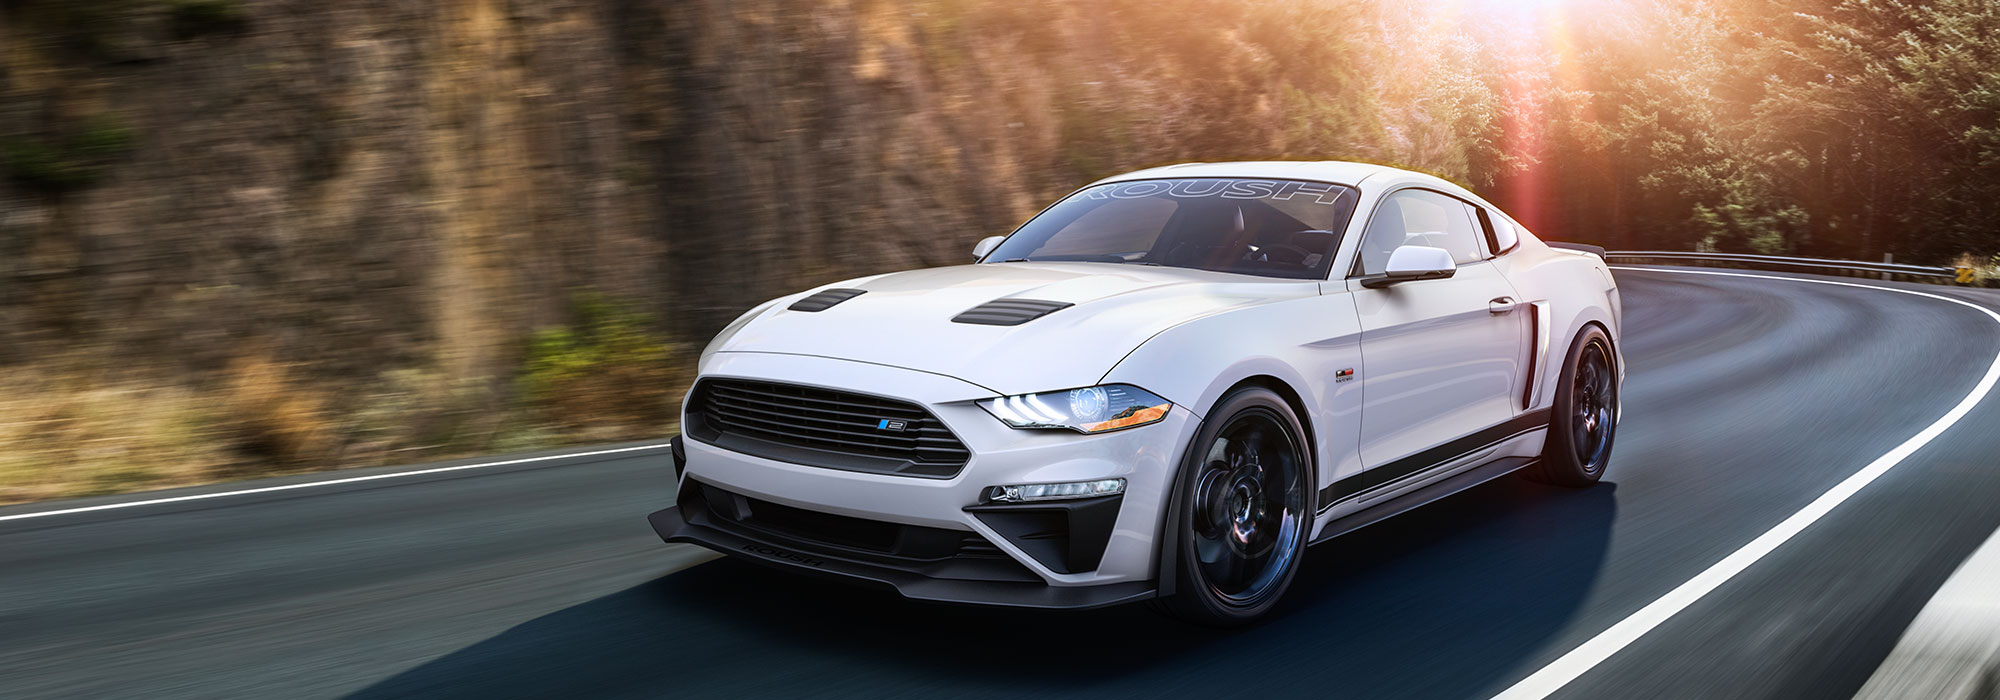 2019 Roush Stage 2 Mustang | Petrie Ford